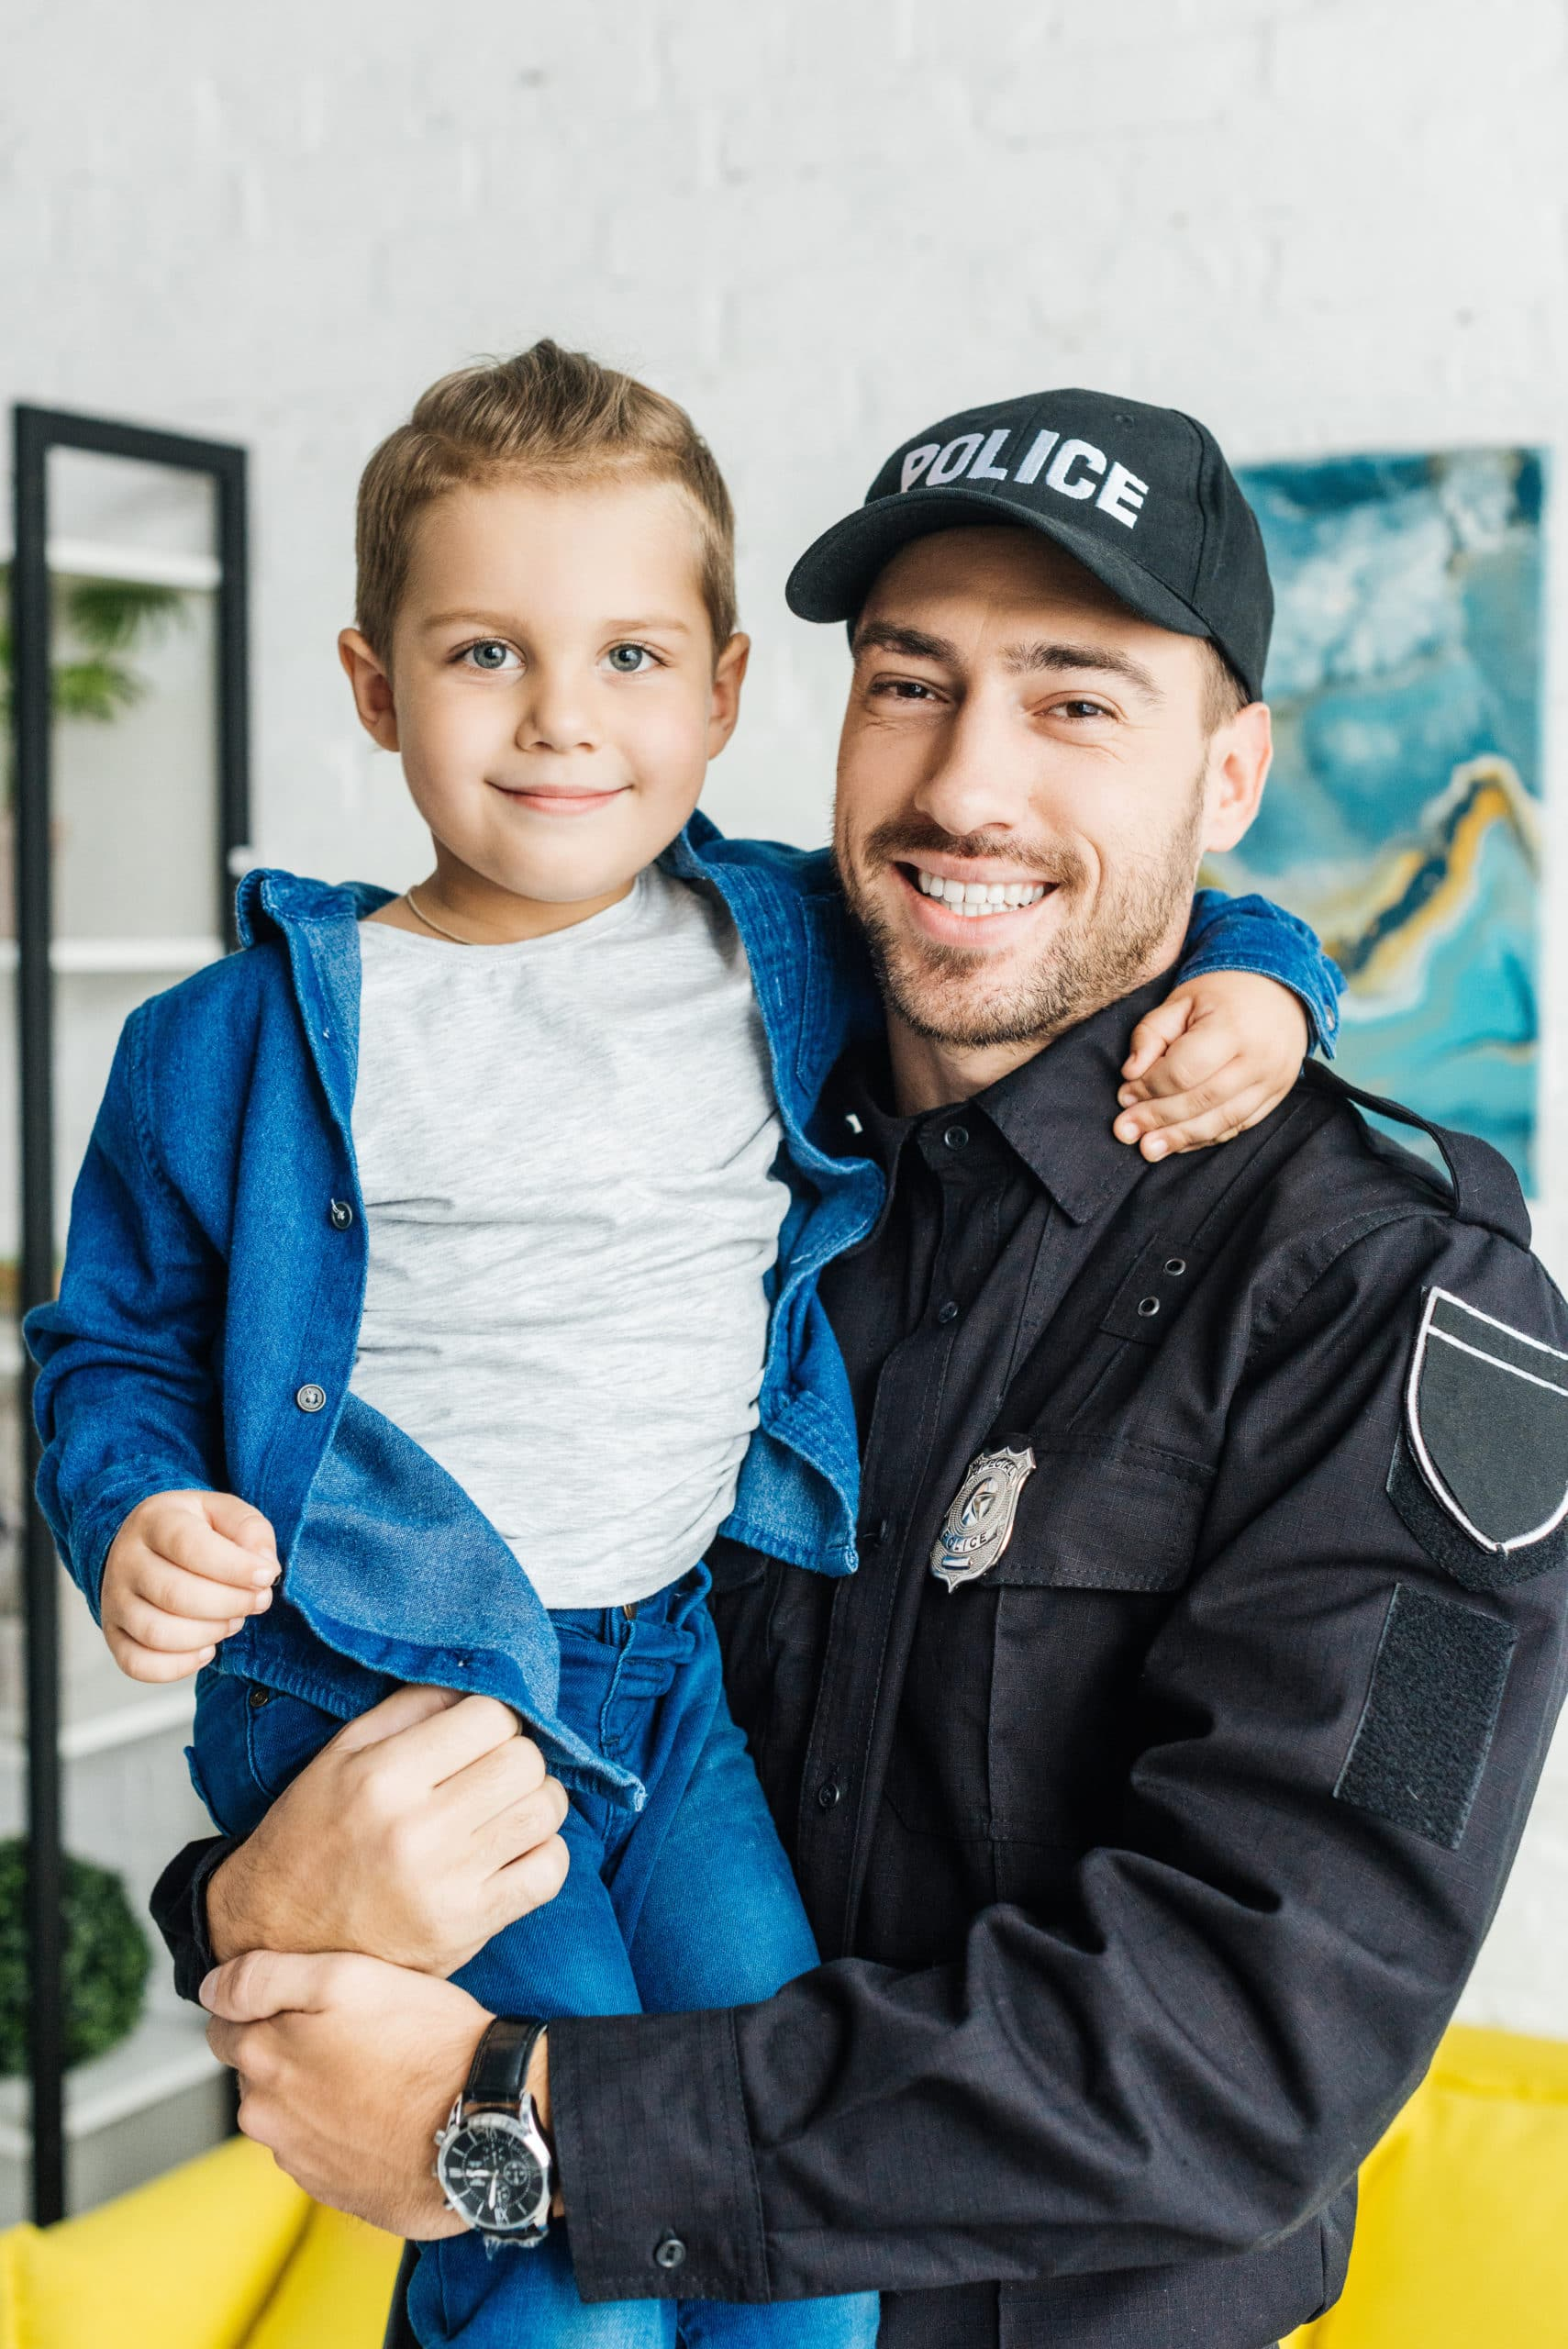 How to Encourage a Child to Pursue a Career in Law Enforcement